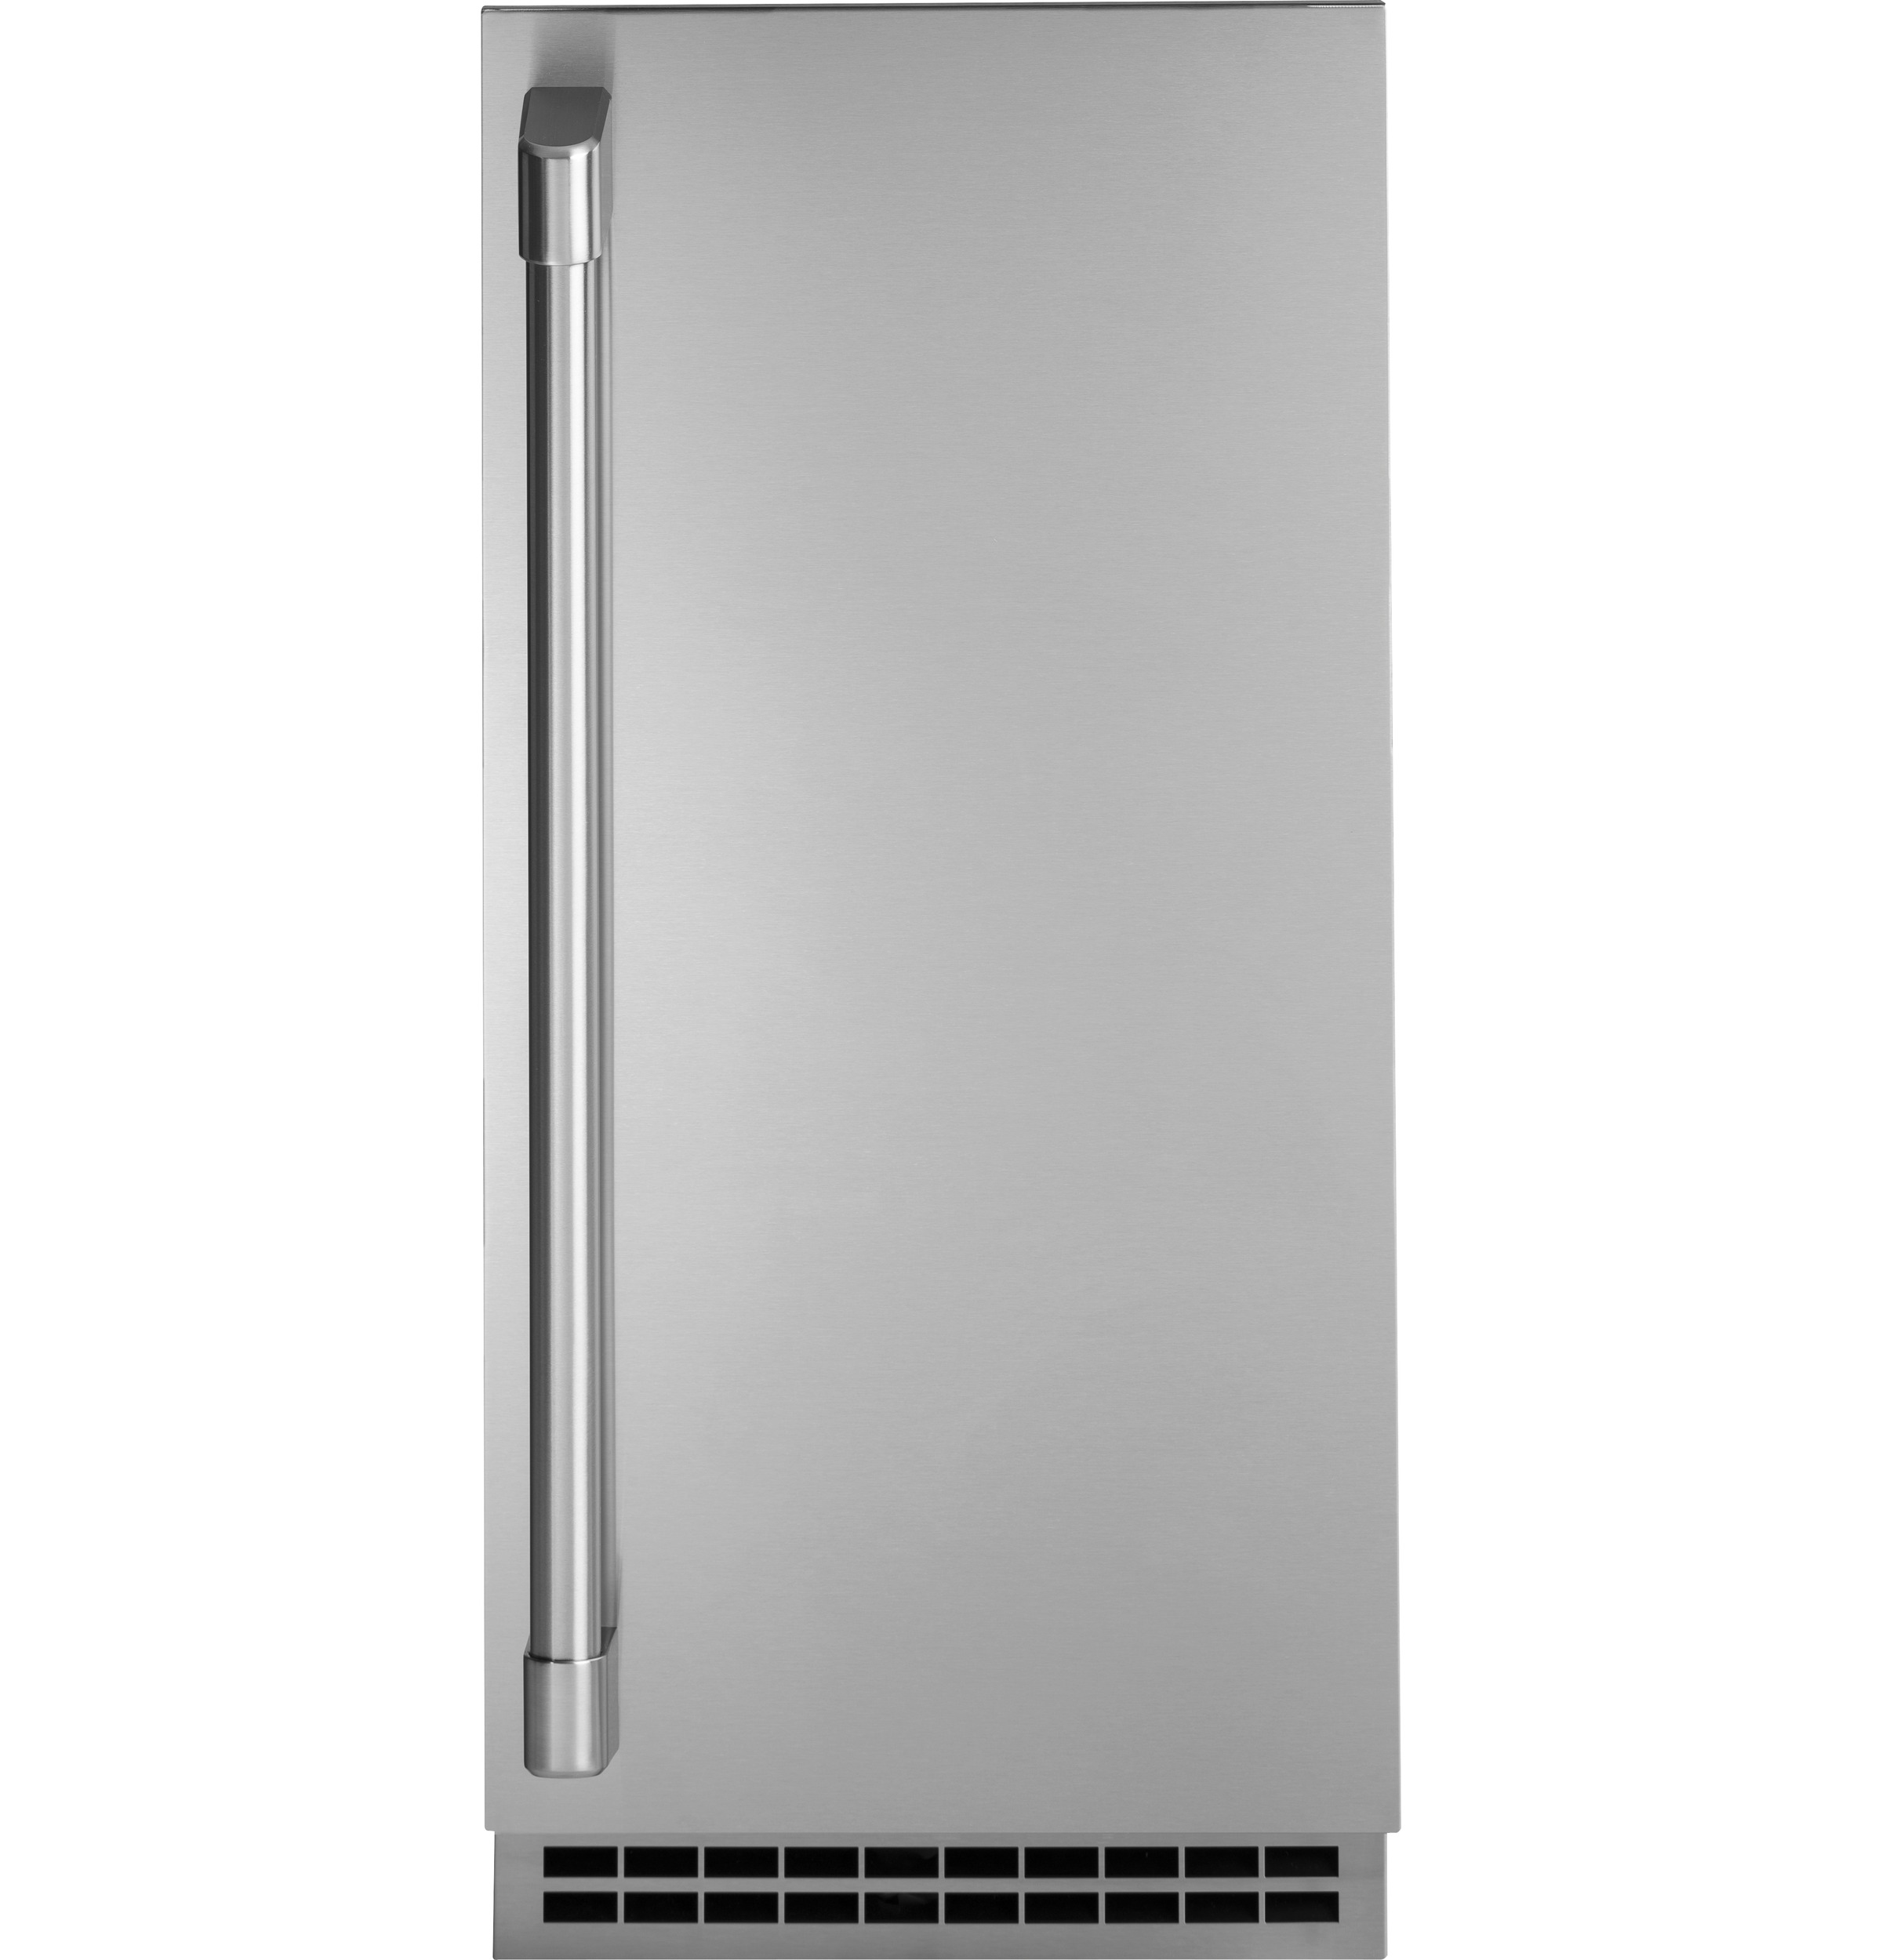 Cafe Series Stainless Steel Ice Maker Door Kit